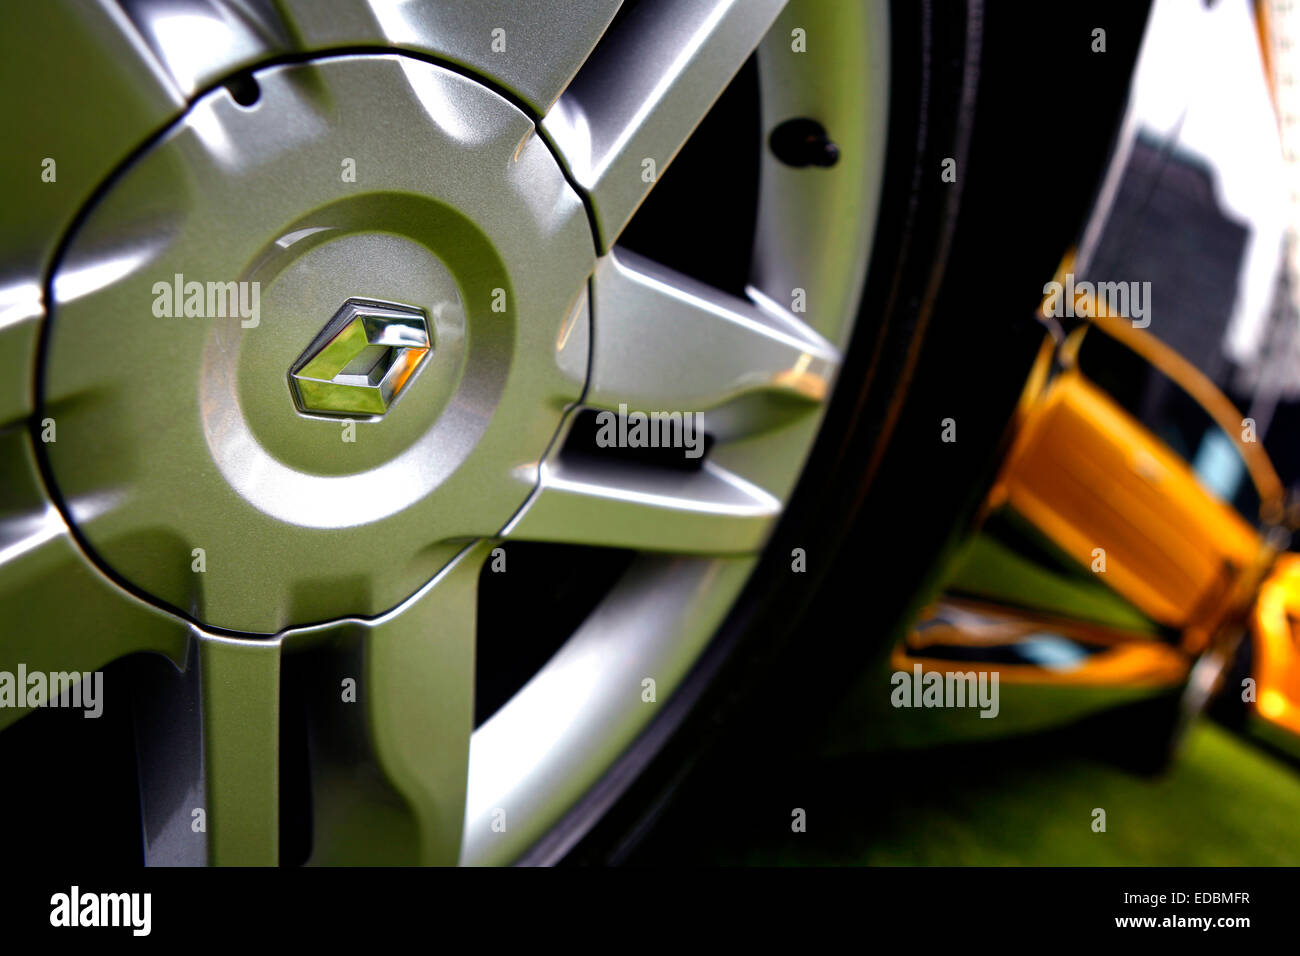 The alloy wheels of a highly polished black Renault in Central London. - Stock Image